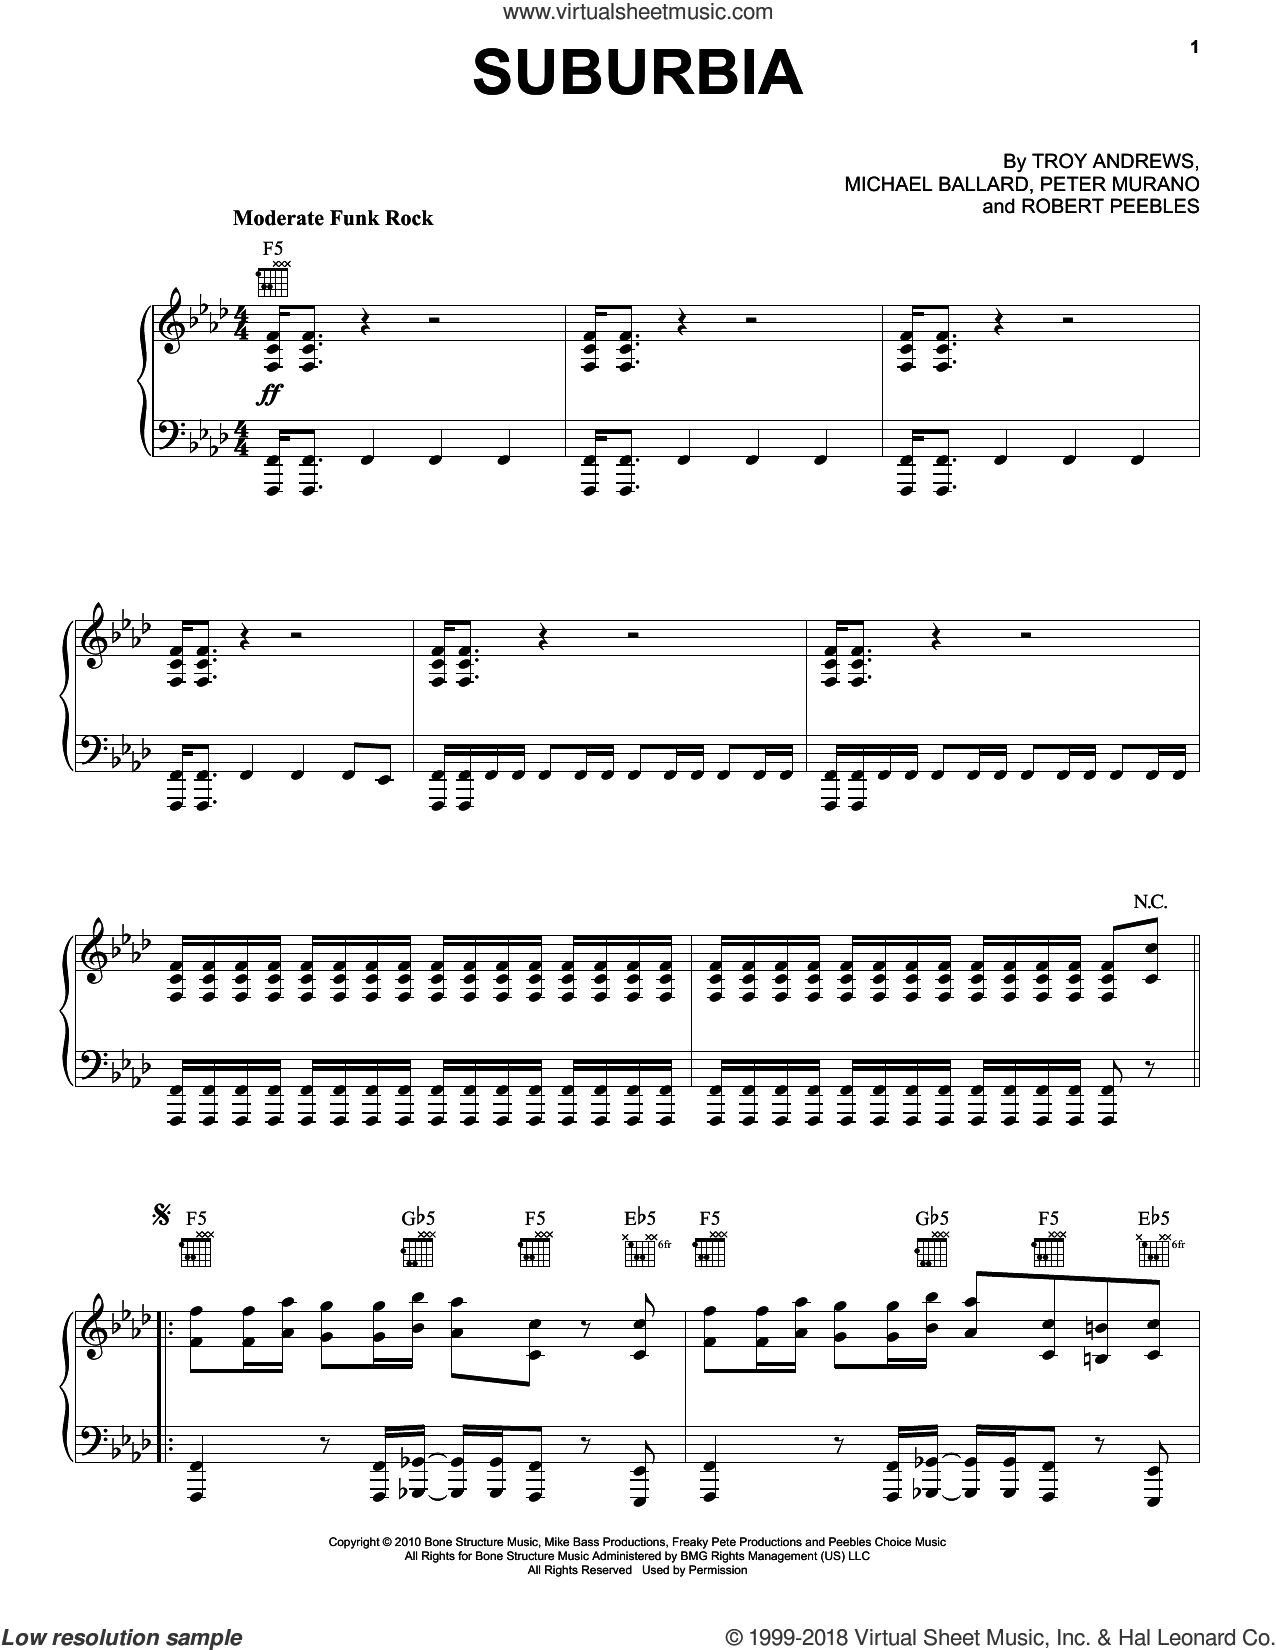 Suburbia sheet music for voice, piano or guitar by Trombone Shorty, Michael Ballard, Peter Murano, Robert Peebles and Troy Andrews, intermediate skill level